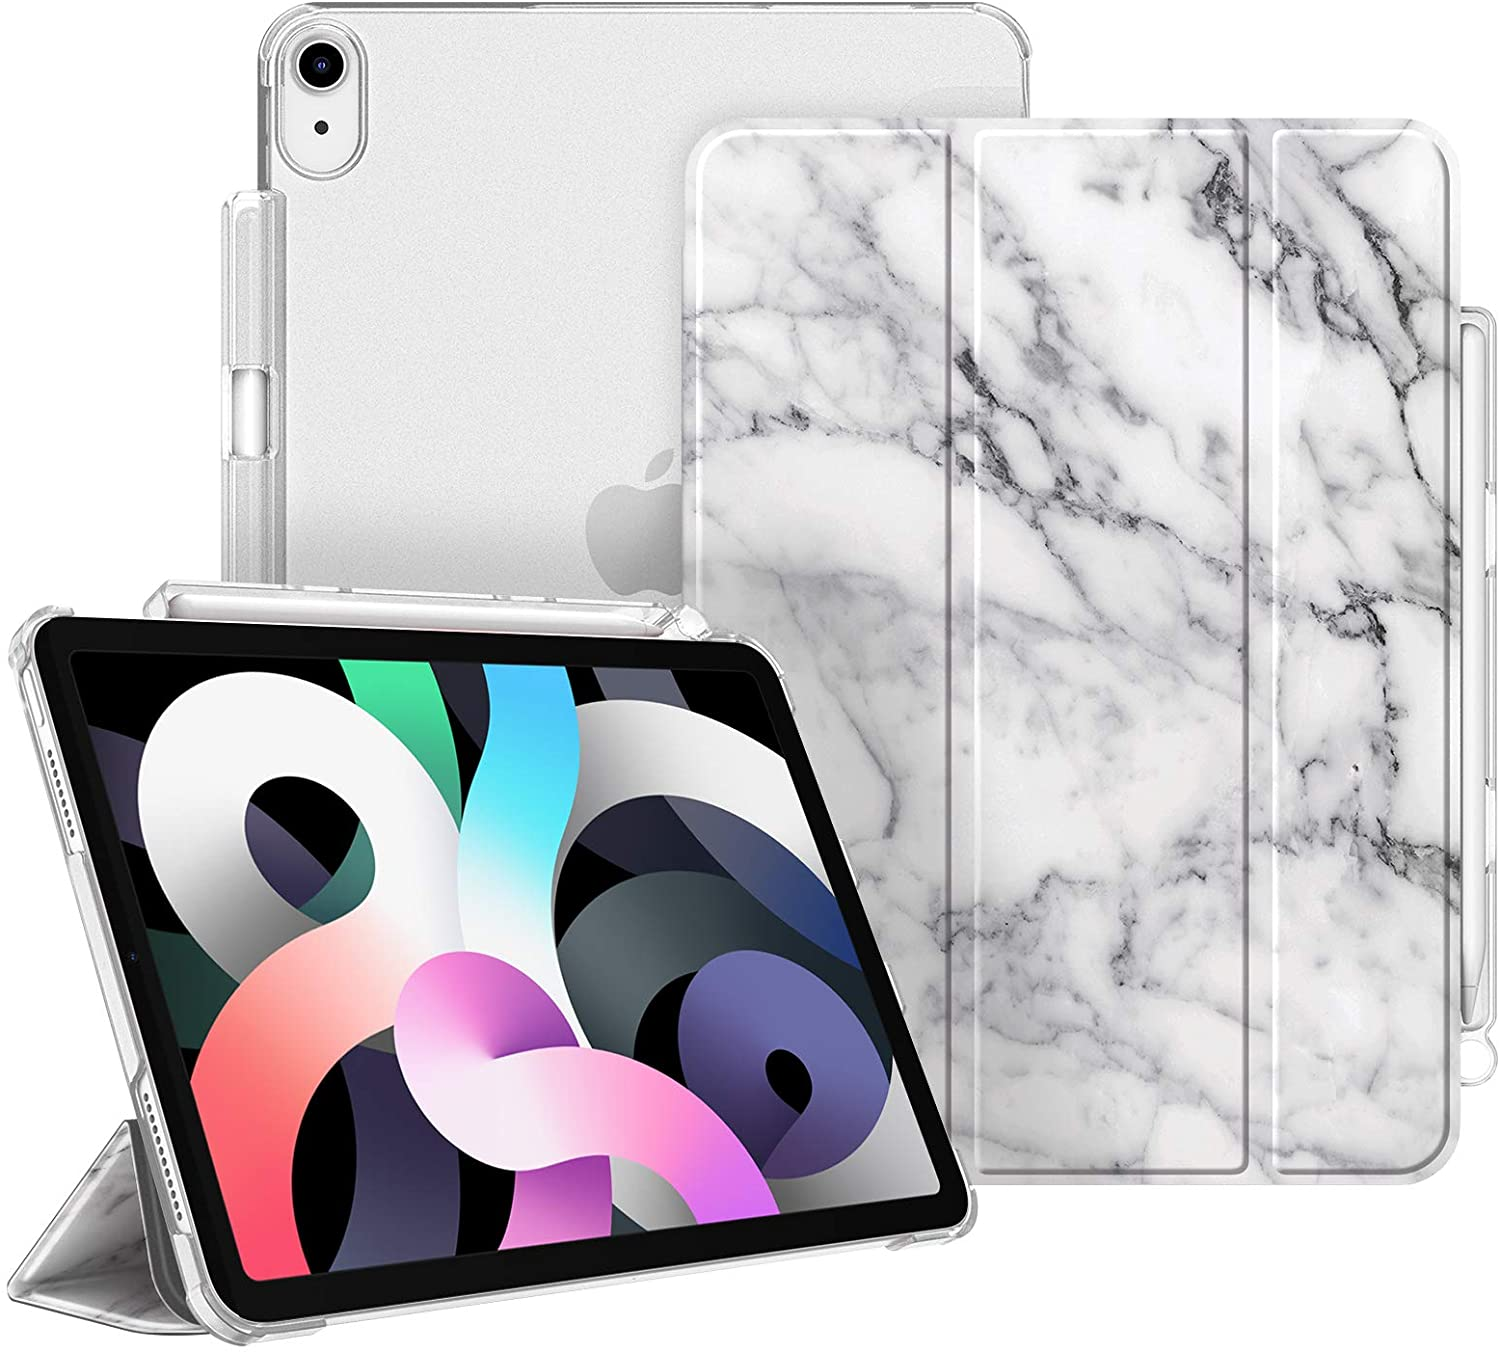 Fintie Case for iPad Air 4 10.9 Inch 2020 with Pencil Holder - SlimShell Lightweight Stand Case with Translucent Frosted Back Cover, Auto Wake/Sleep for iPad Air 4th Generation, Marble White